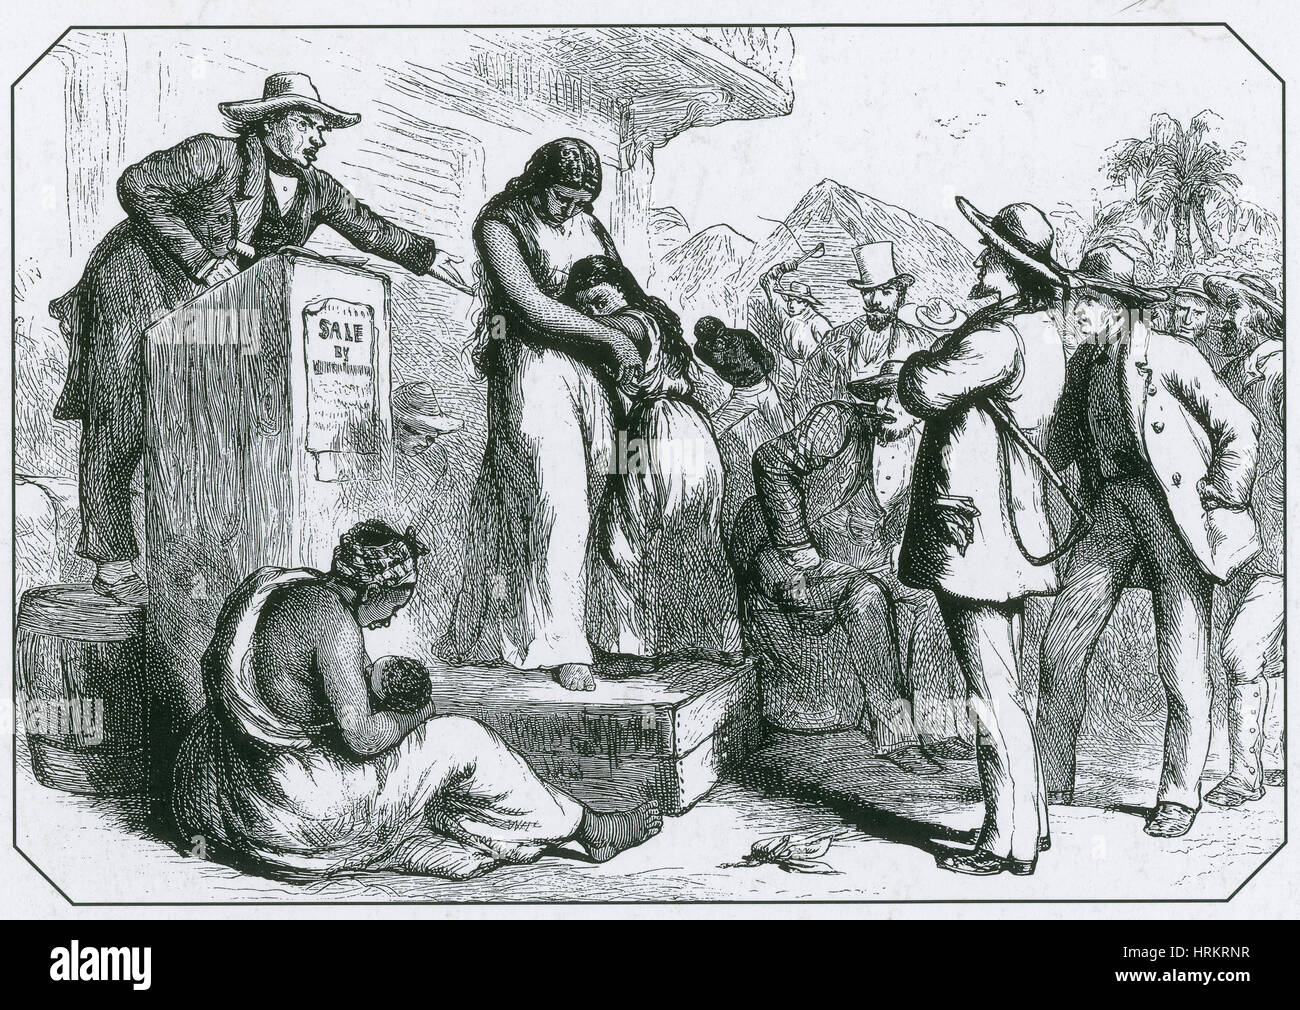 Slave Auction - Stock Image